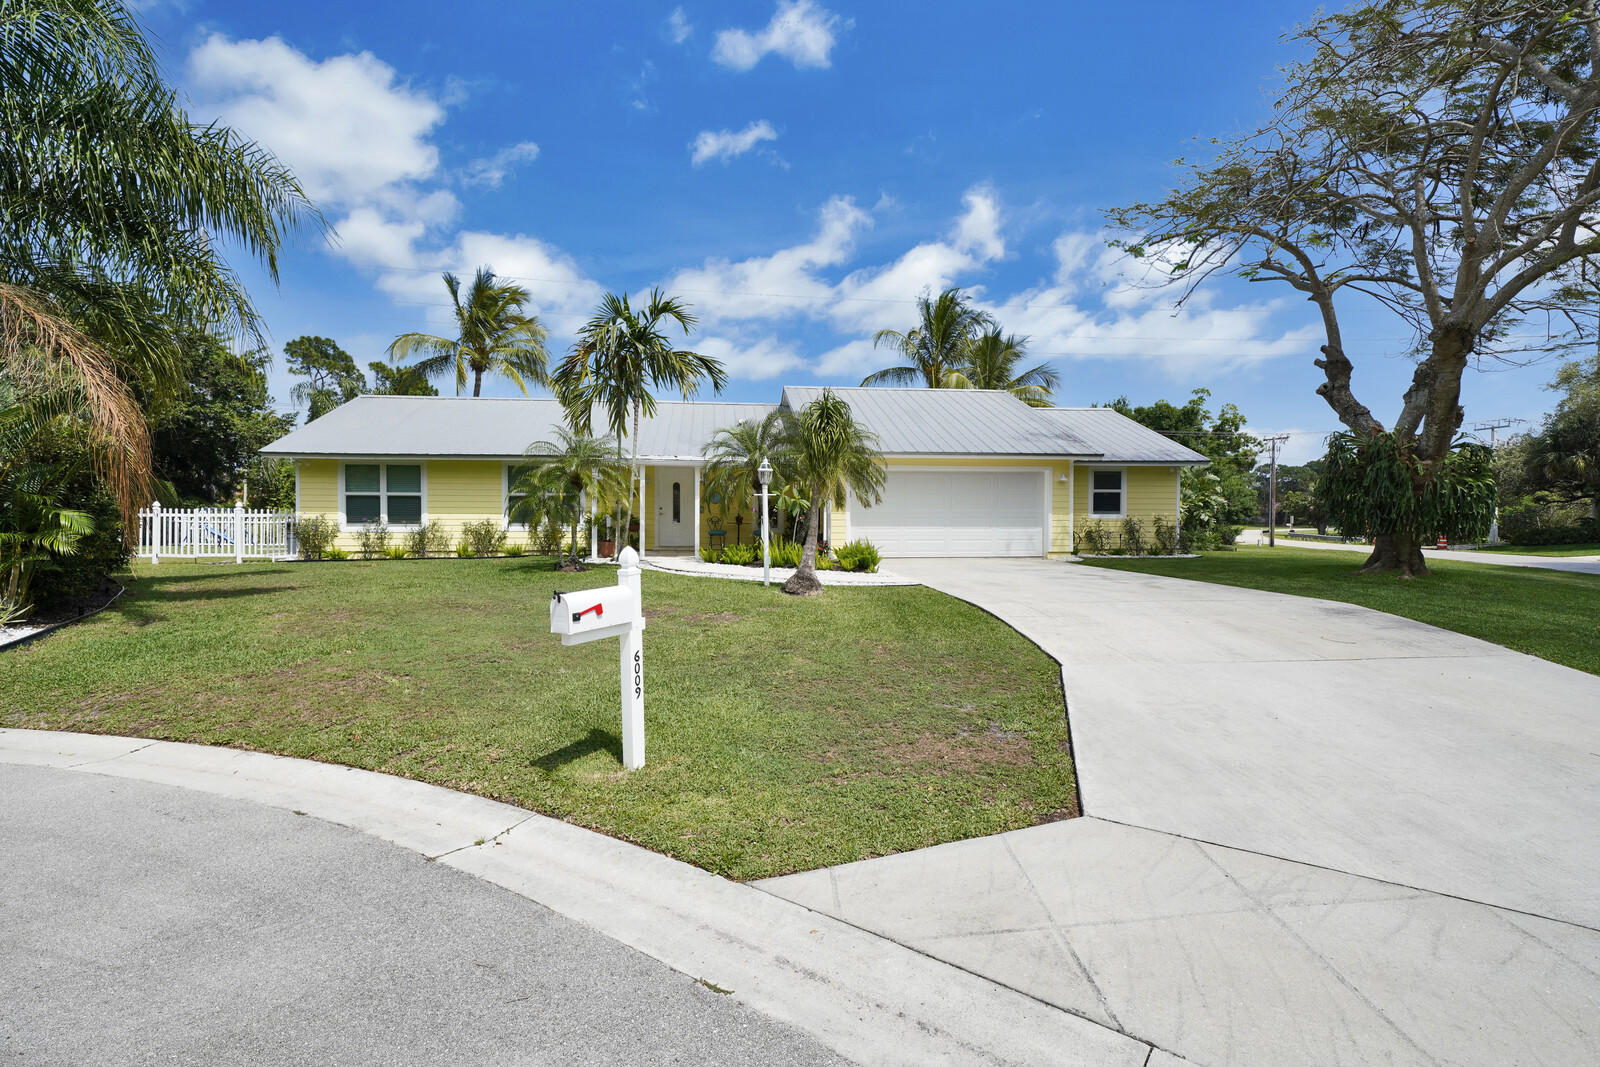 Key-West style POOL home located on a half-acre lot in the family-oriented, desirable boating community of Eagle's Nest in the heart of Jupiter! This spotless clean 4 Bedroom 2 Bath home offers tile flooring through out main living area, cathedral ceiling, separate dining room and split floor plan. Features impact-glass windows and garage door (2018), newer AC (2017), new washer/dryer/oven & cooktop (2020) and new epoxy floor in garage. Expansive patio overlooking the pool and tropically landscaped backyard. Community has a private & gated boat ramp and fishing pier on the Loxahatchee River for residents' use only. Residents enjoy easy access to miles of bike paths, a community pond and a low-cost HOA. You will enjoy Jupiter's world class dining, recreation & entertainment by land or sea!